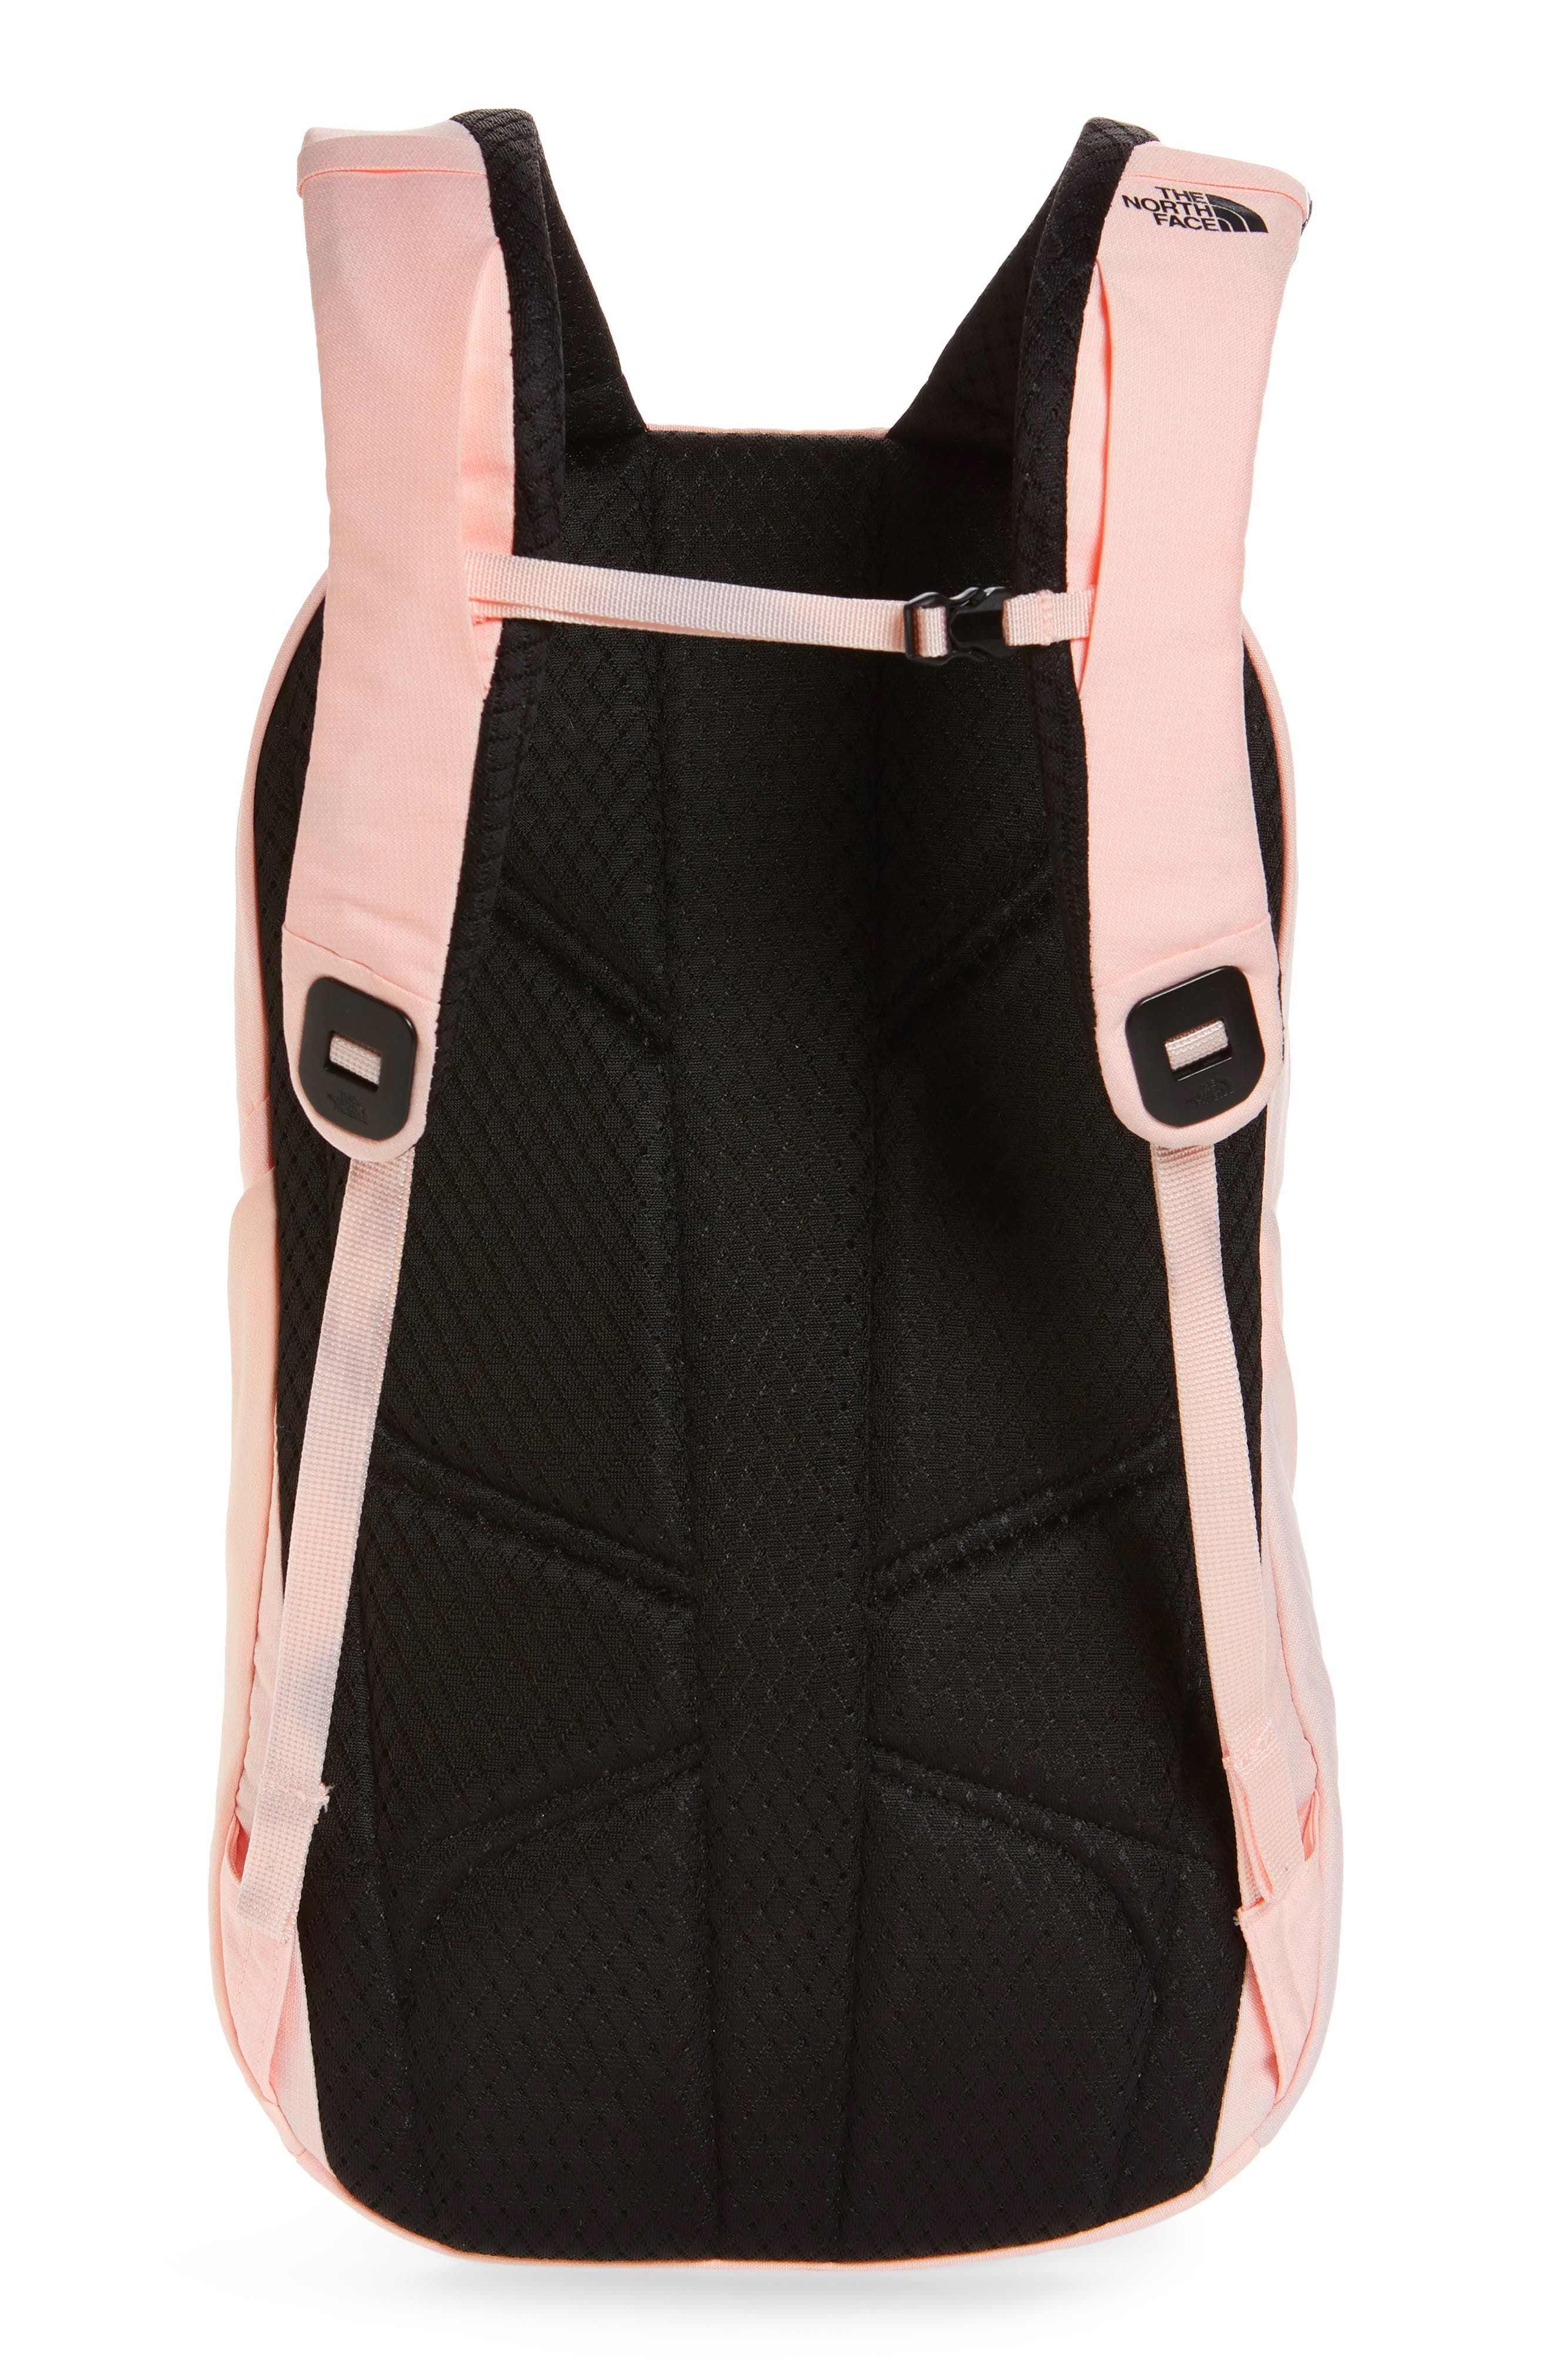 THE NORTH FACE, 'Isabella' Backpack, Alternate thumbnail 4, color, PINK LIGHT HEATHER/ TNF BLACK